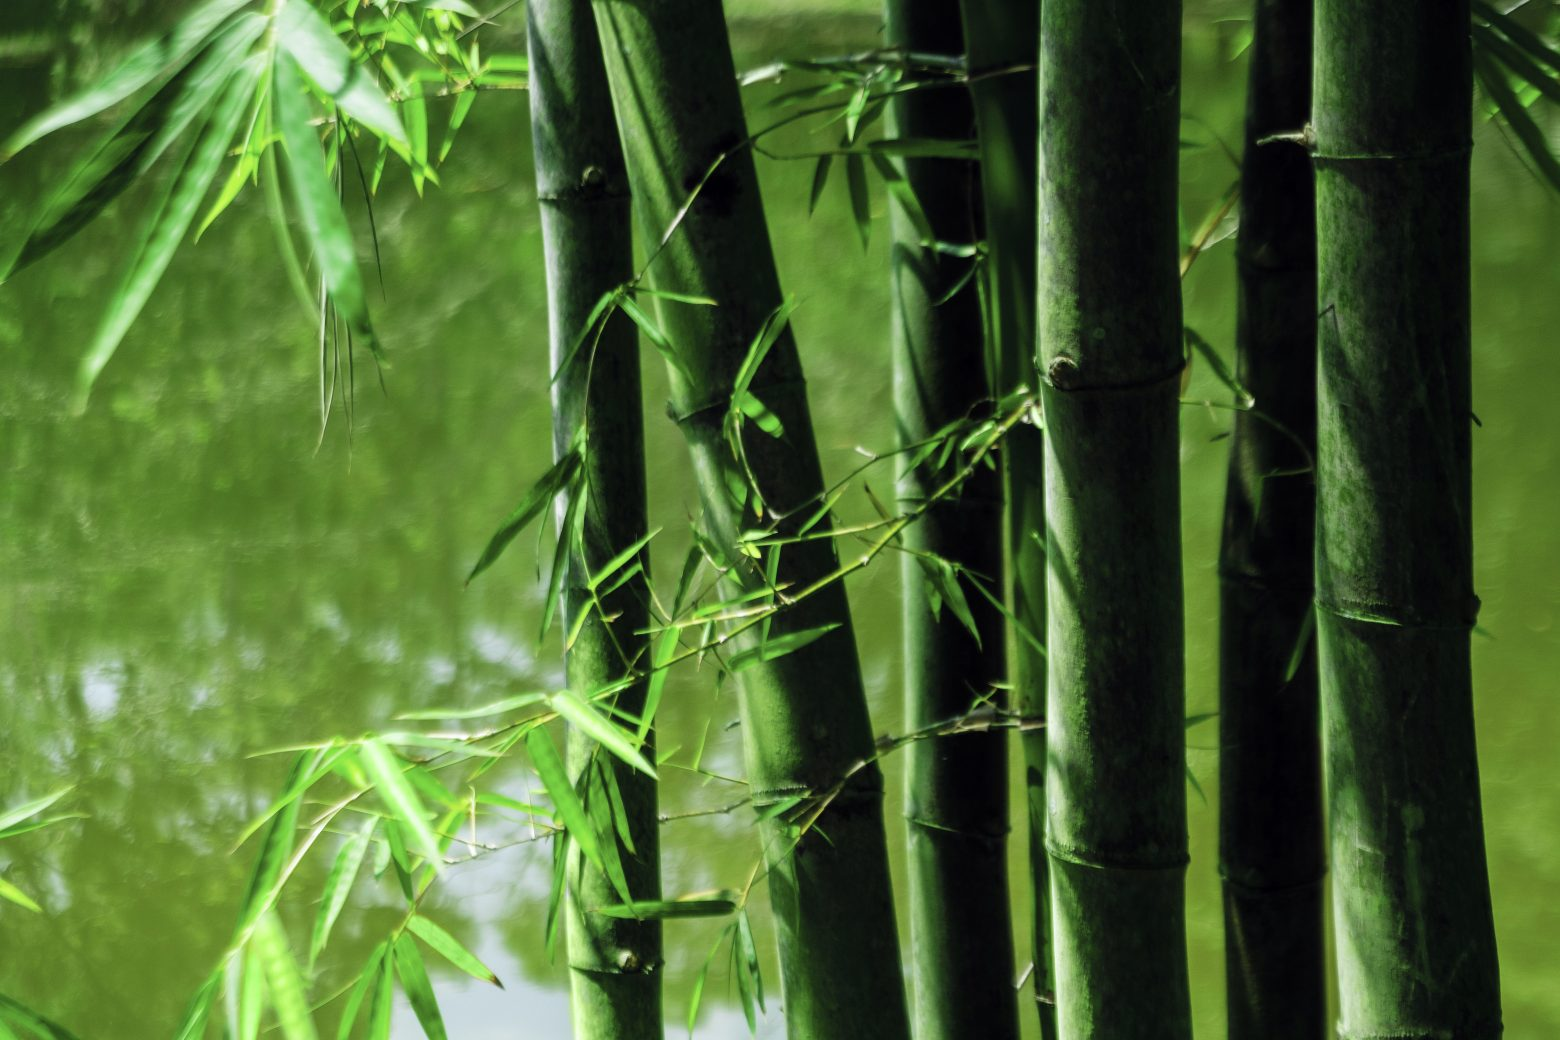 bamboo garden background - Bamboo Garden